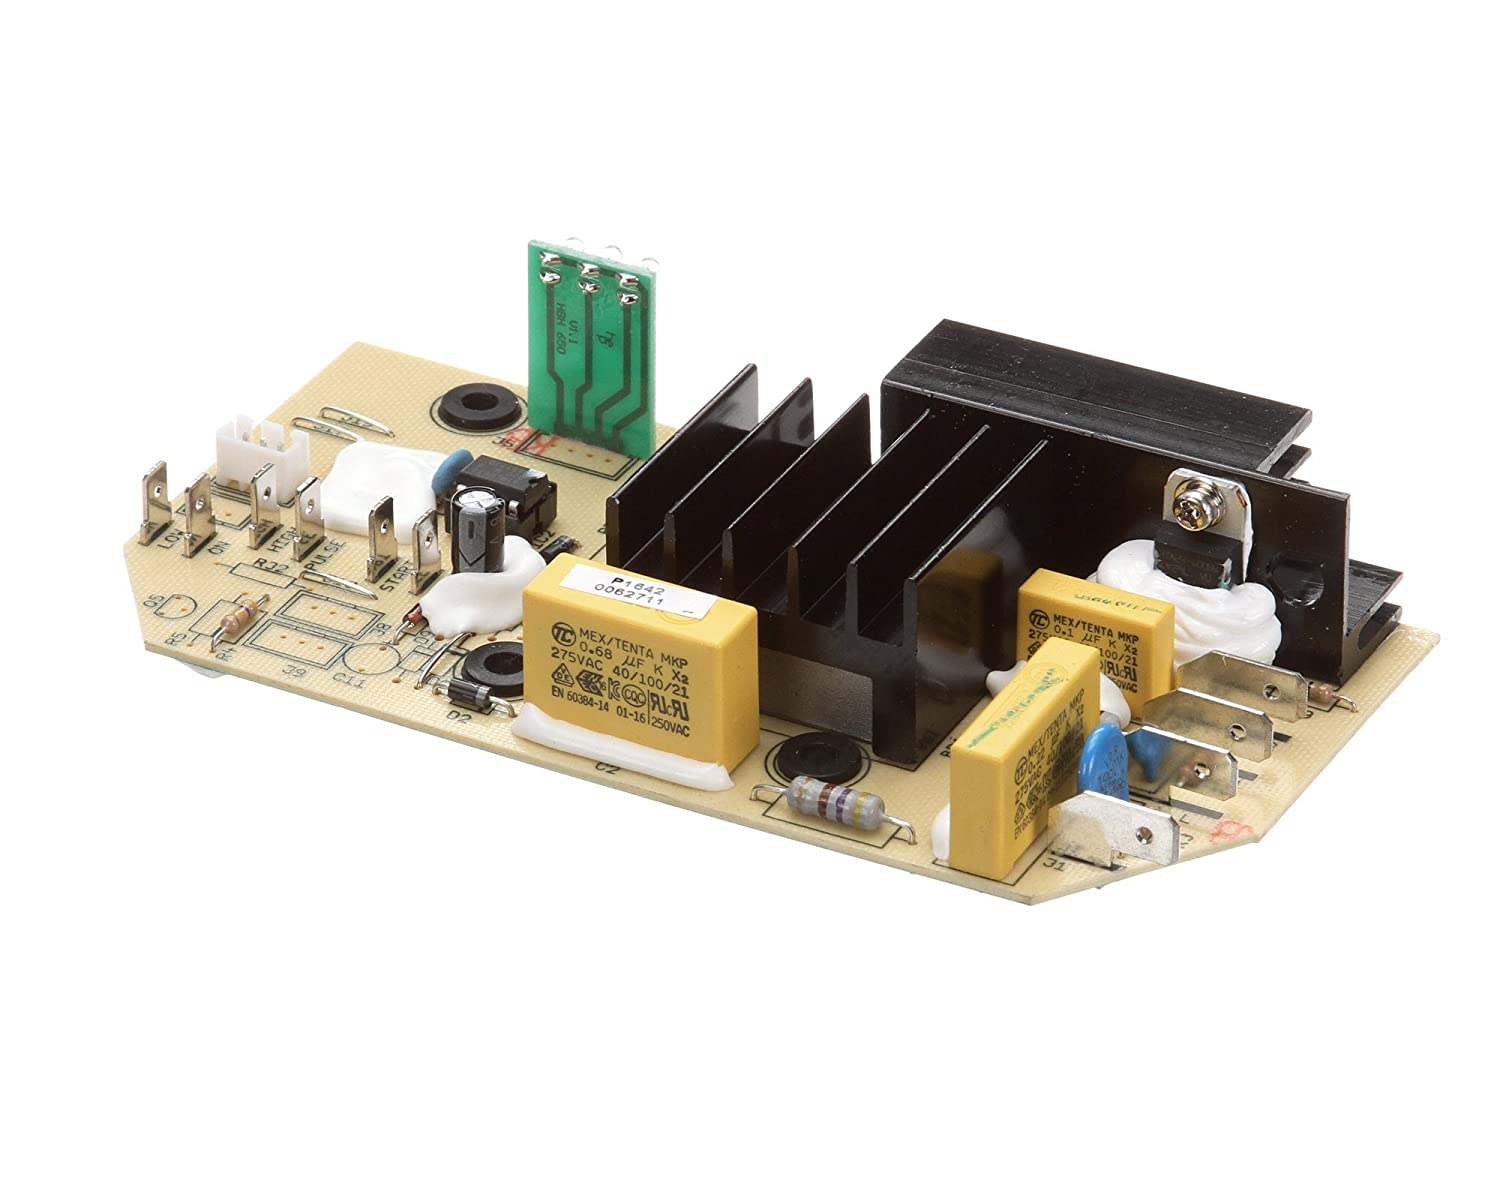 Image of Home and Kitchen Hamilton Beach 990151920 Control Board for Model Hbh550